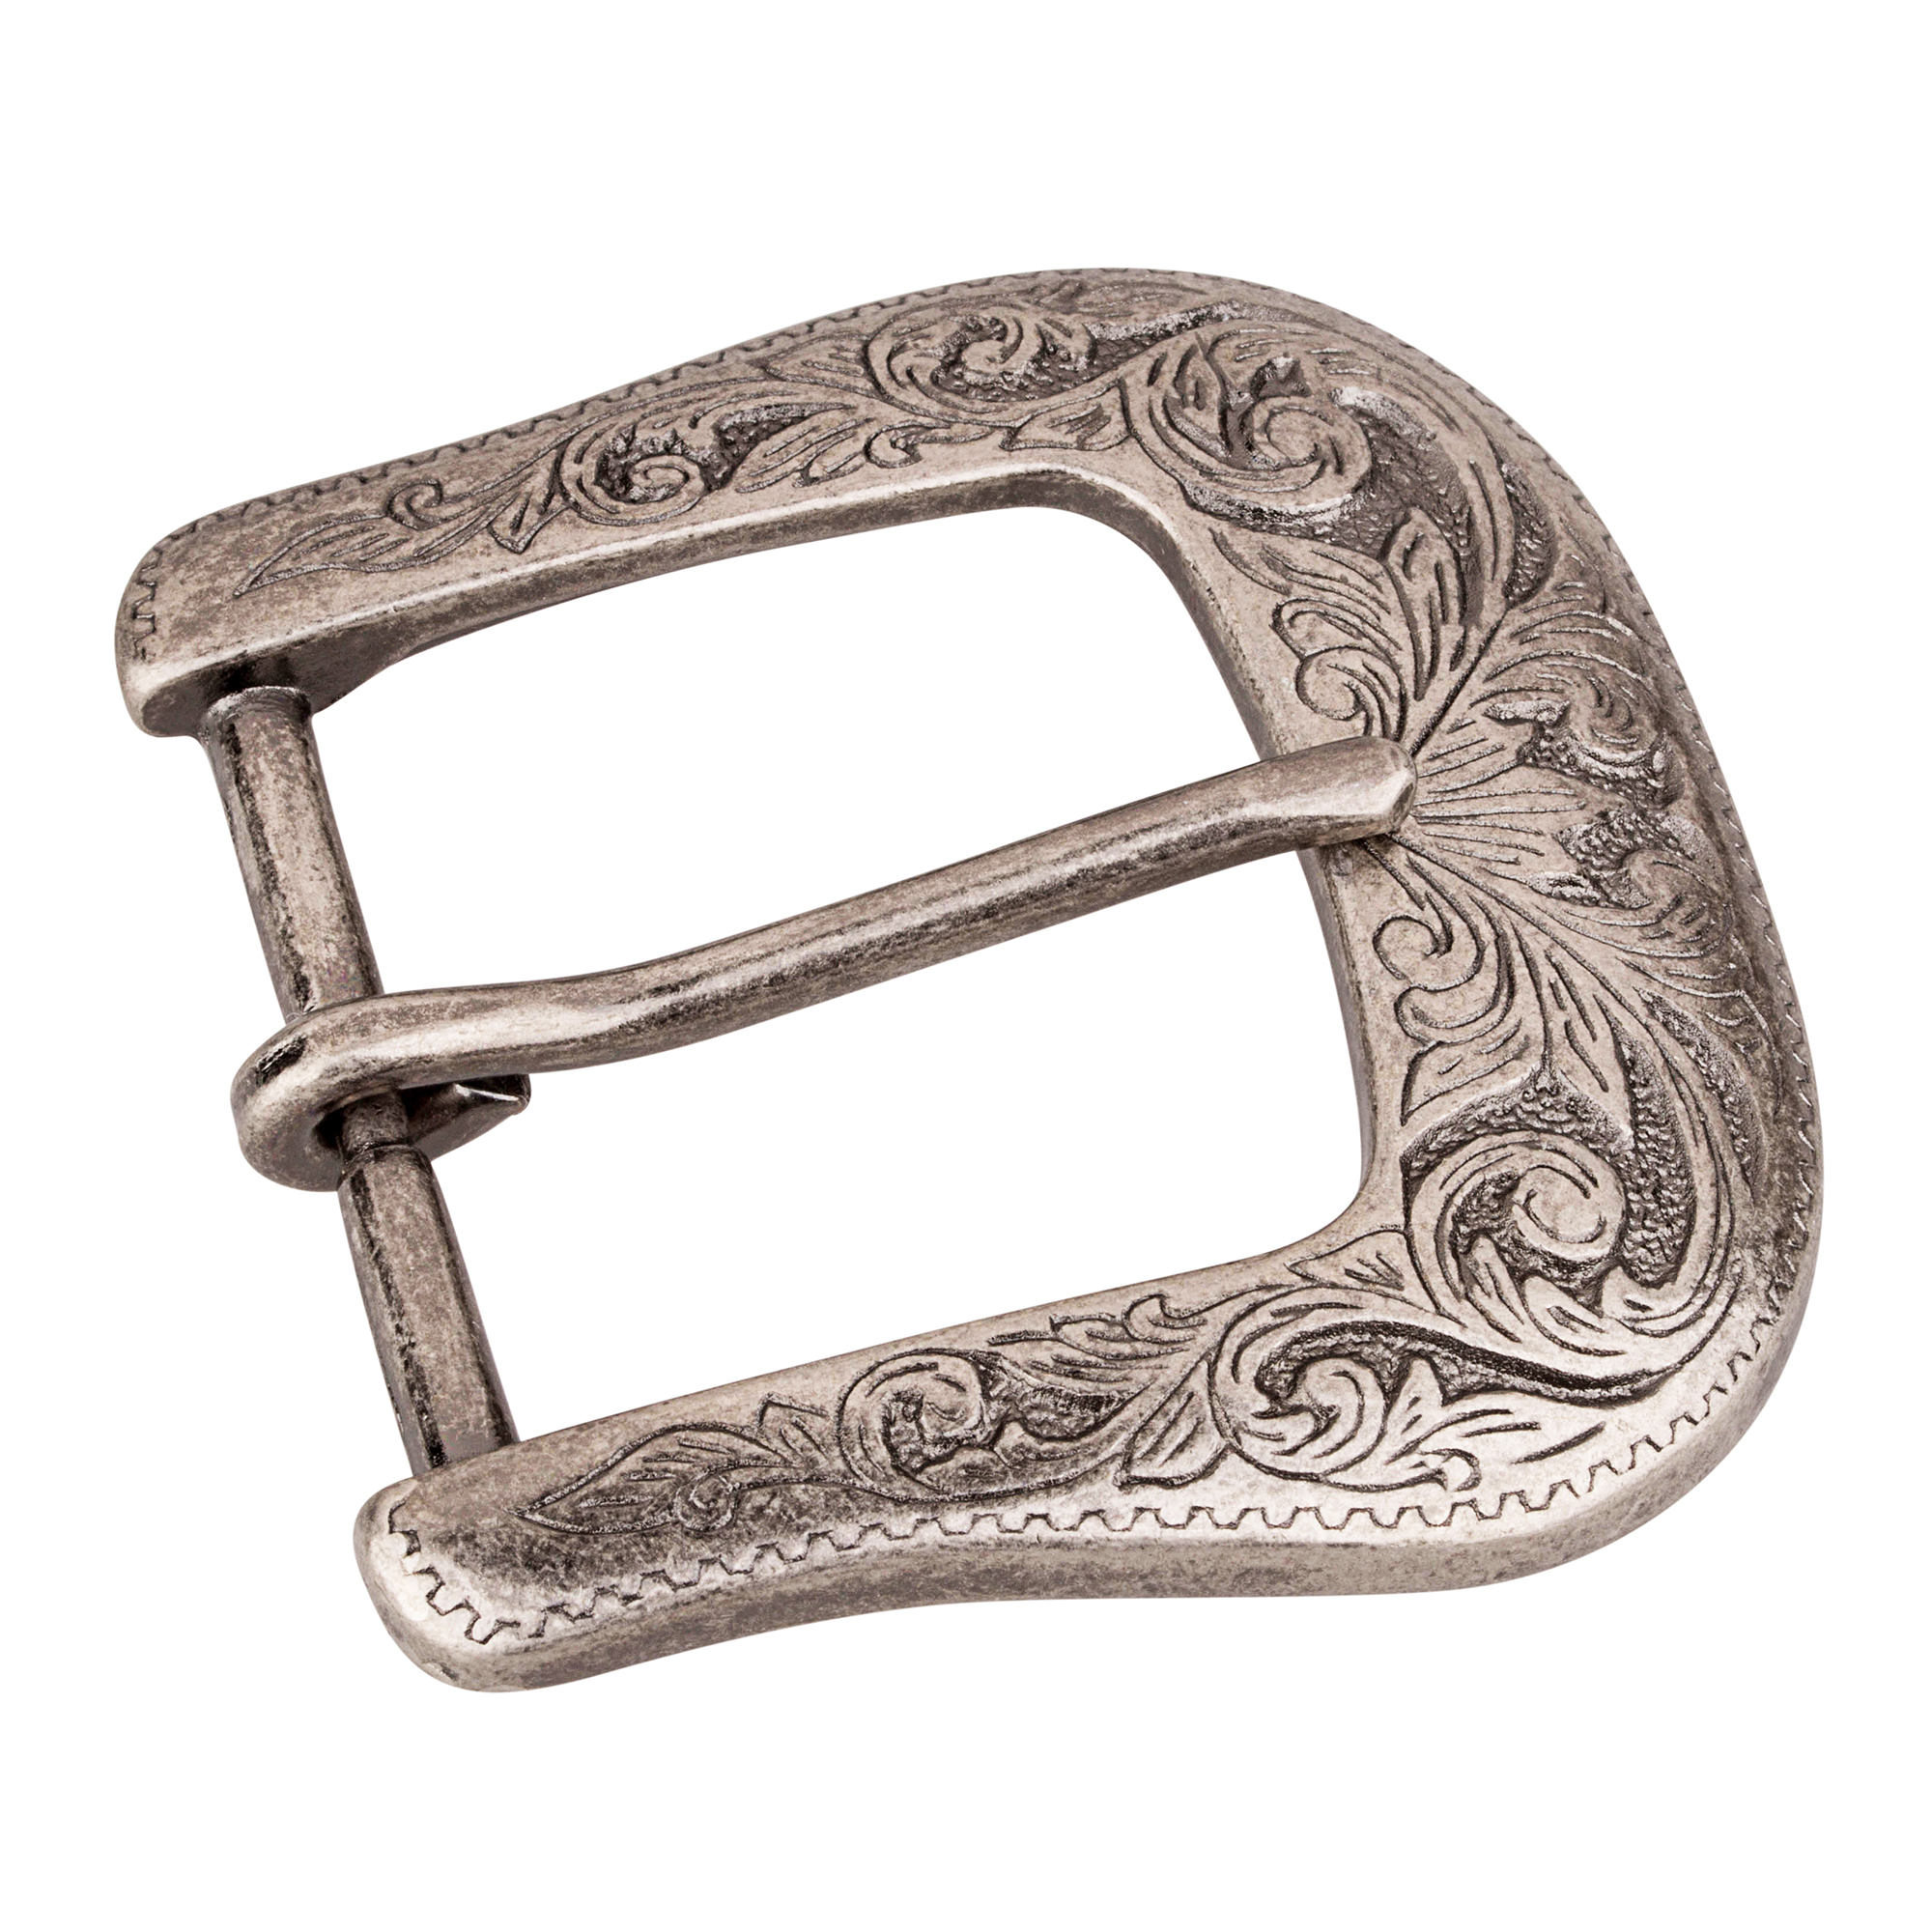 Western Belt Buckles for Men Cowboy Cowgirl Belts Silver Antique ...